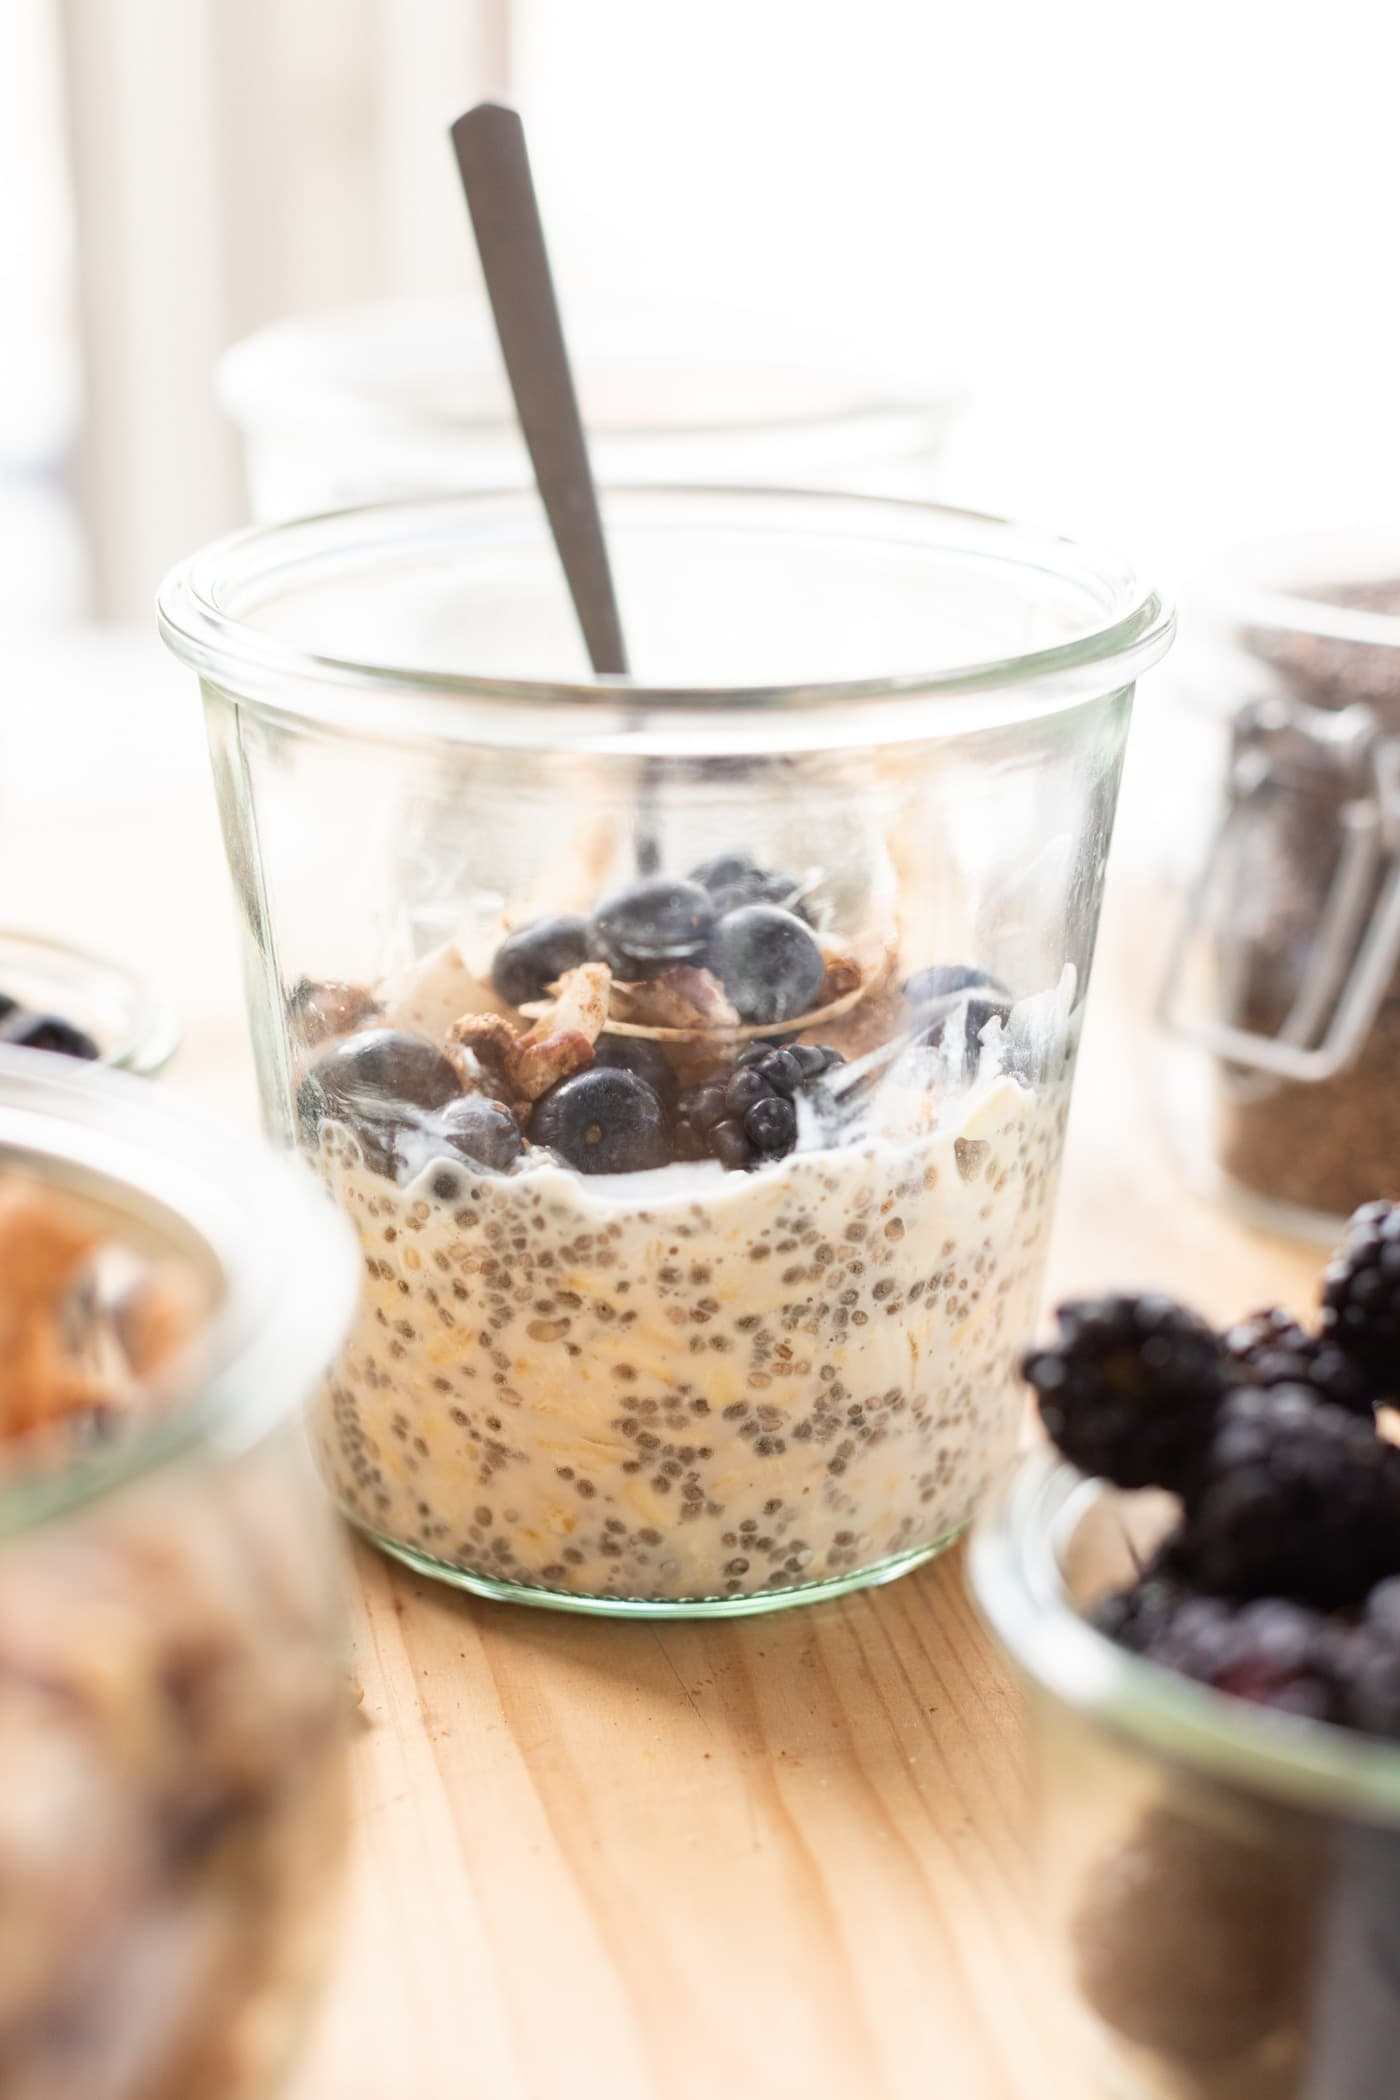 Glass container filled with overnight oats and topped with blueberries and granola with a spoon all on wood surface